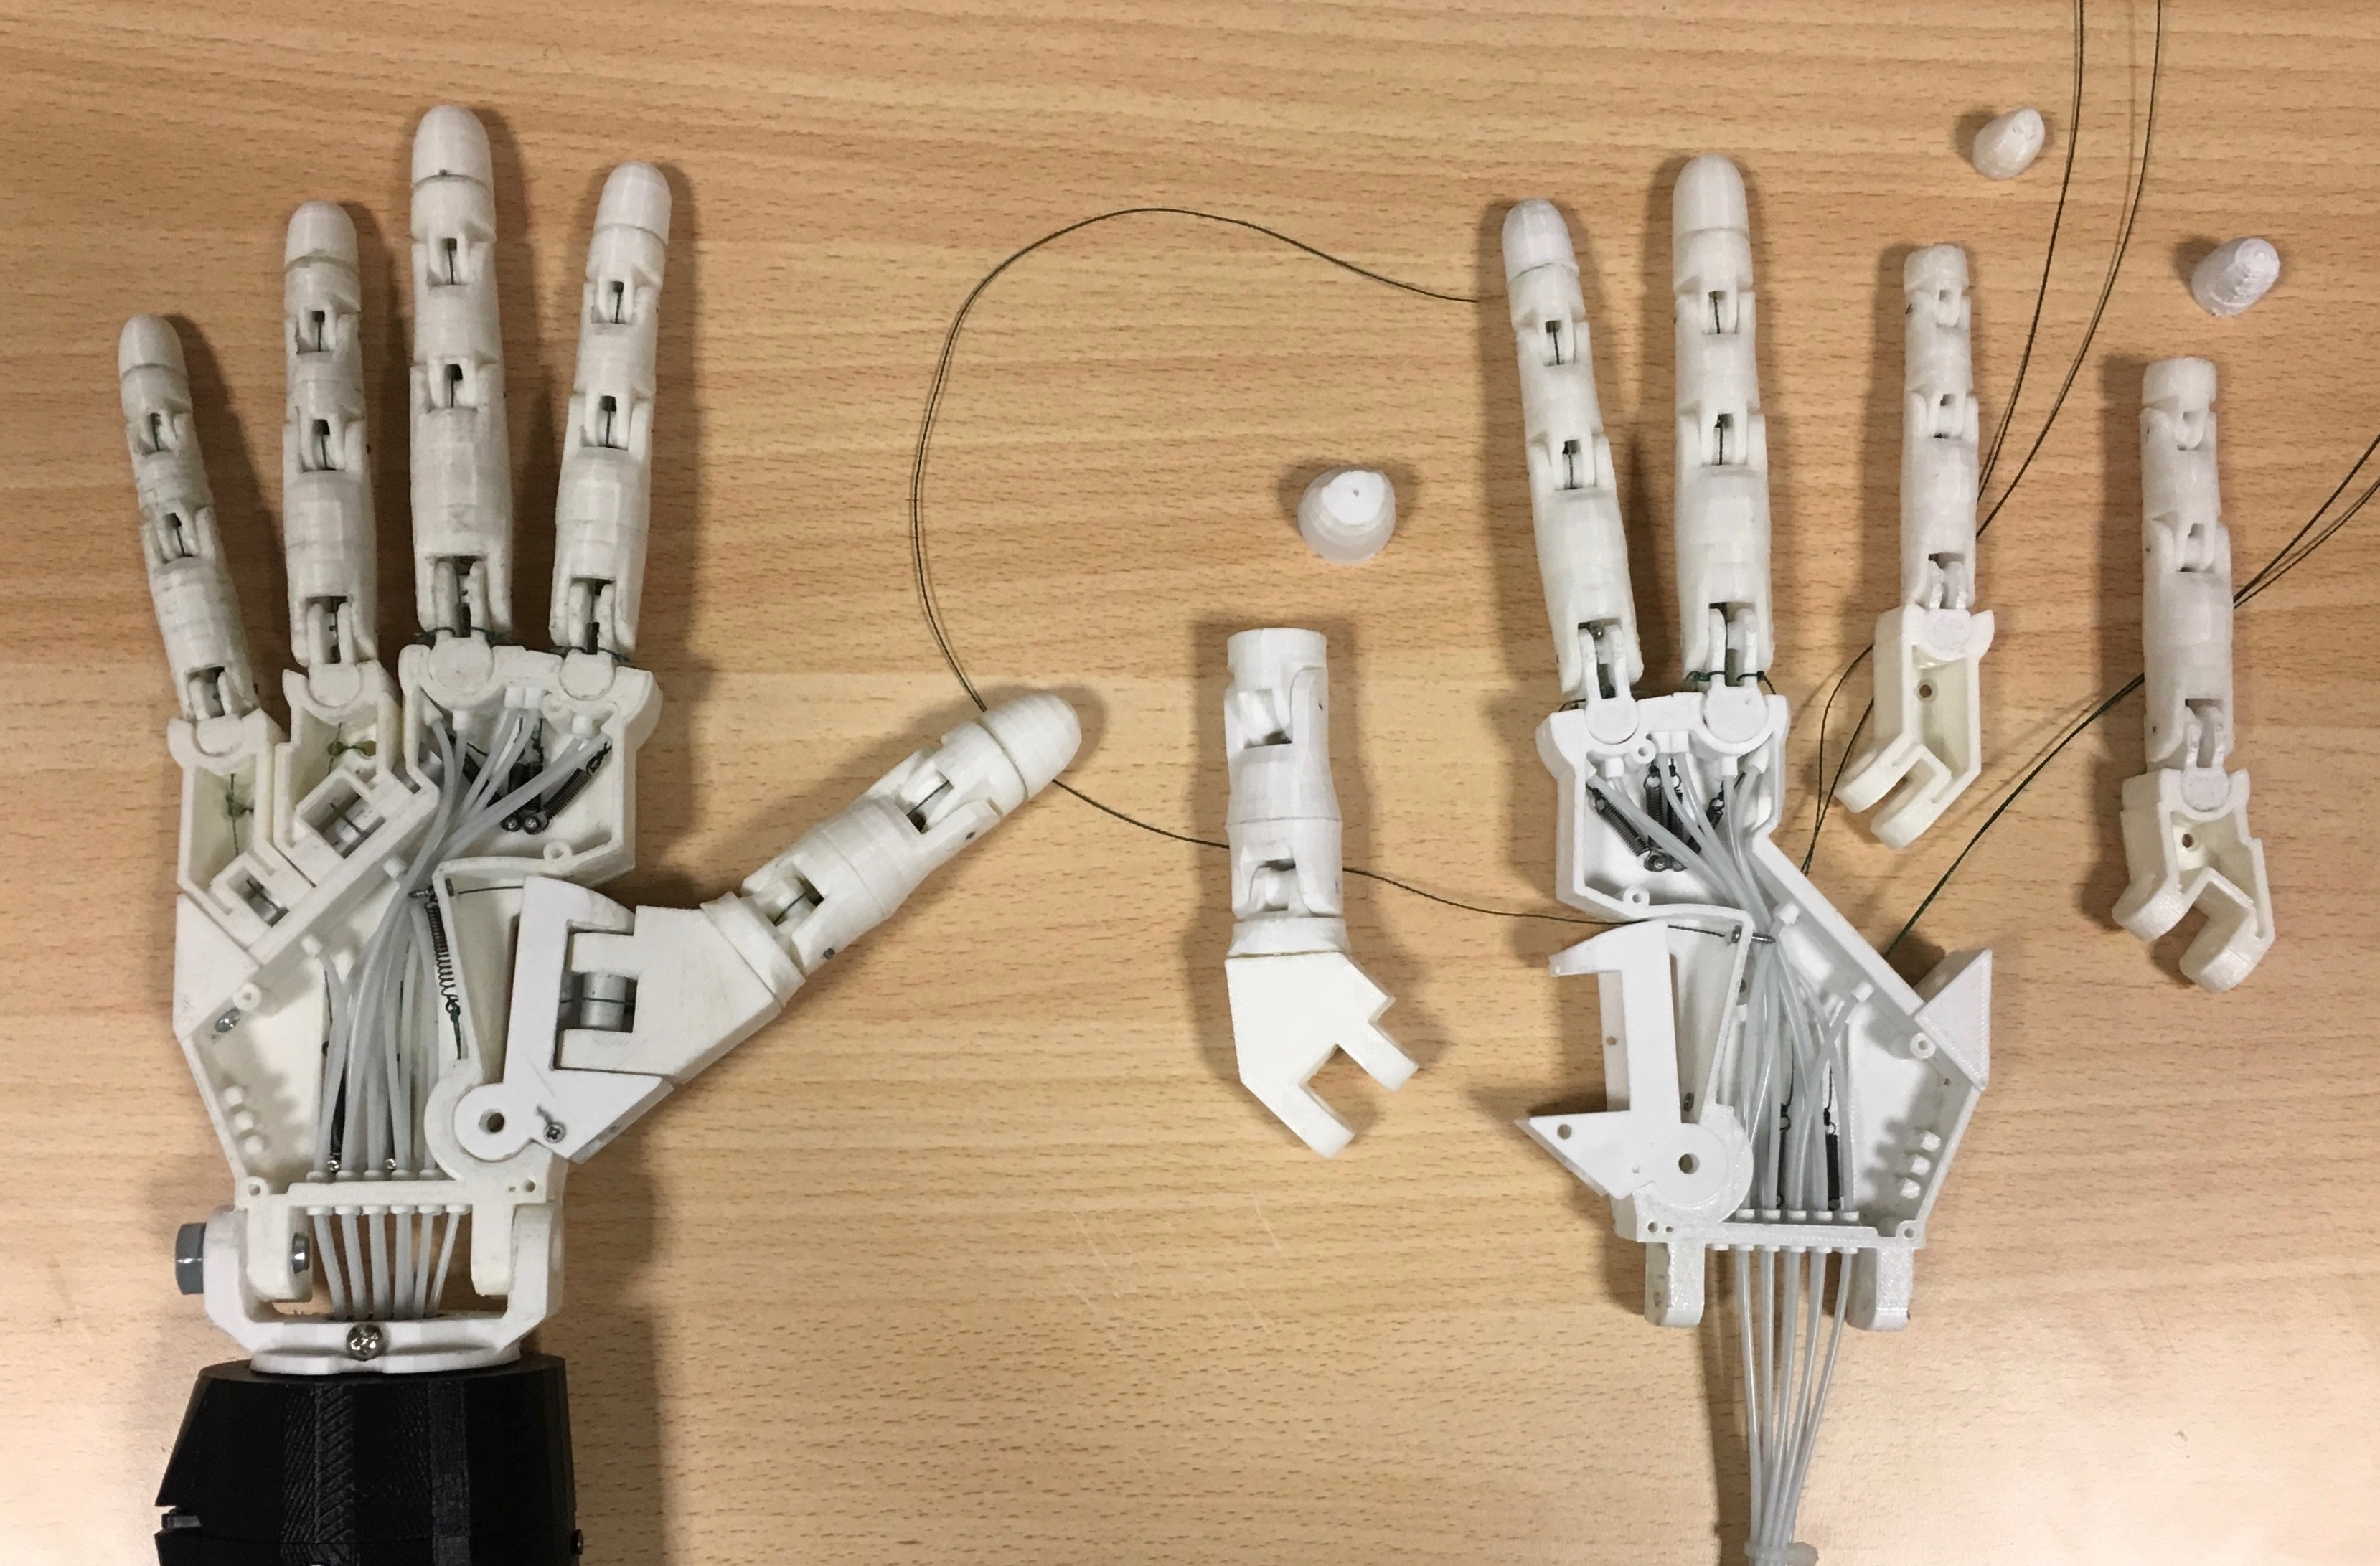 Parloma Robotic Hand Builds and Upgrades